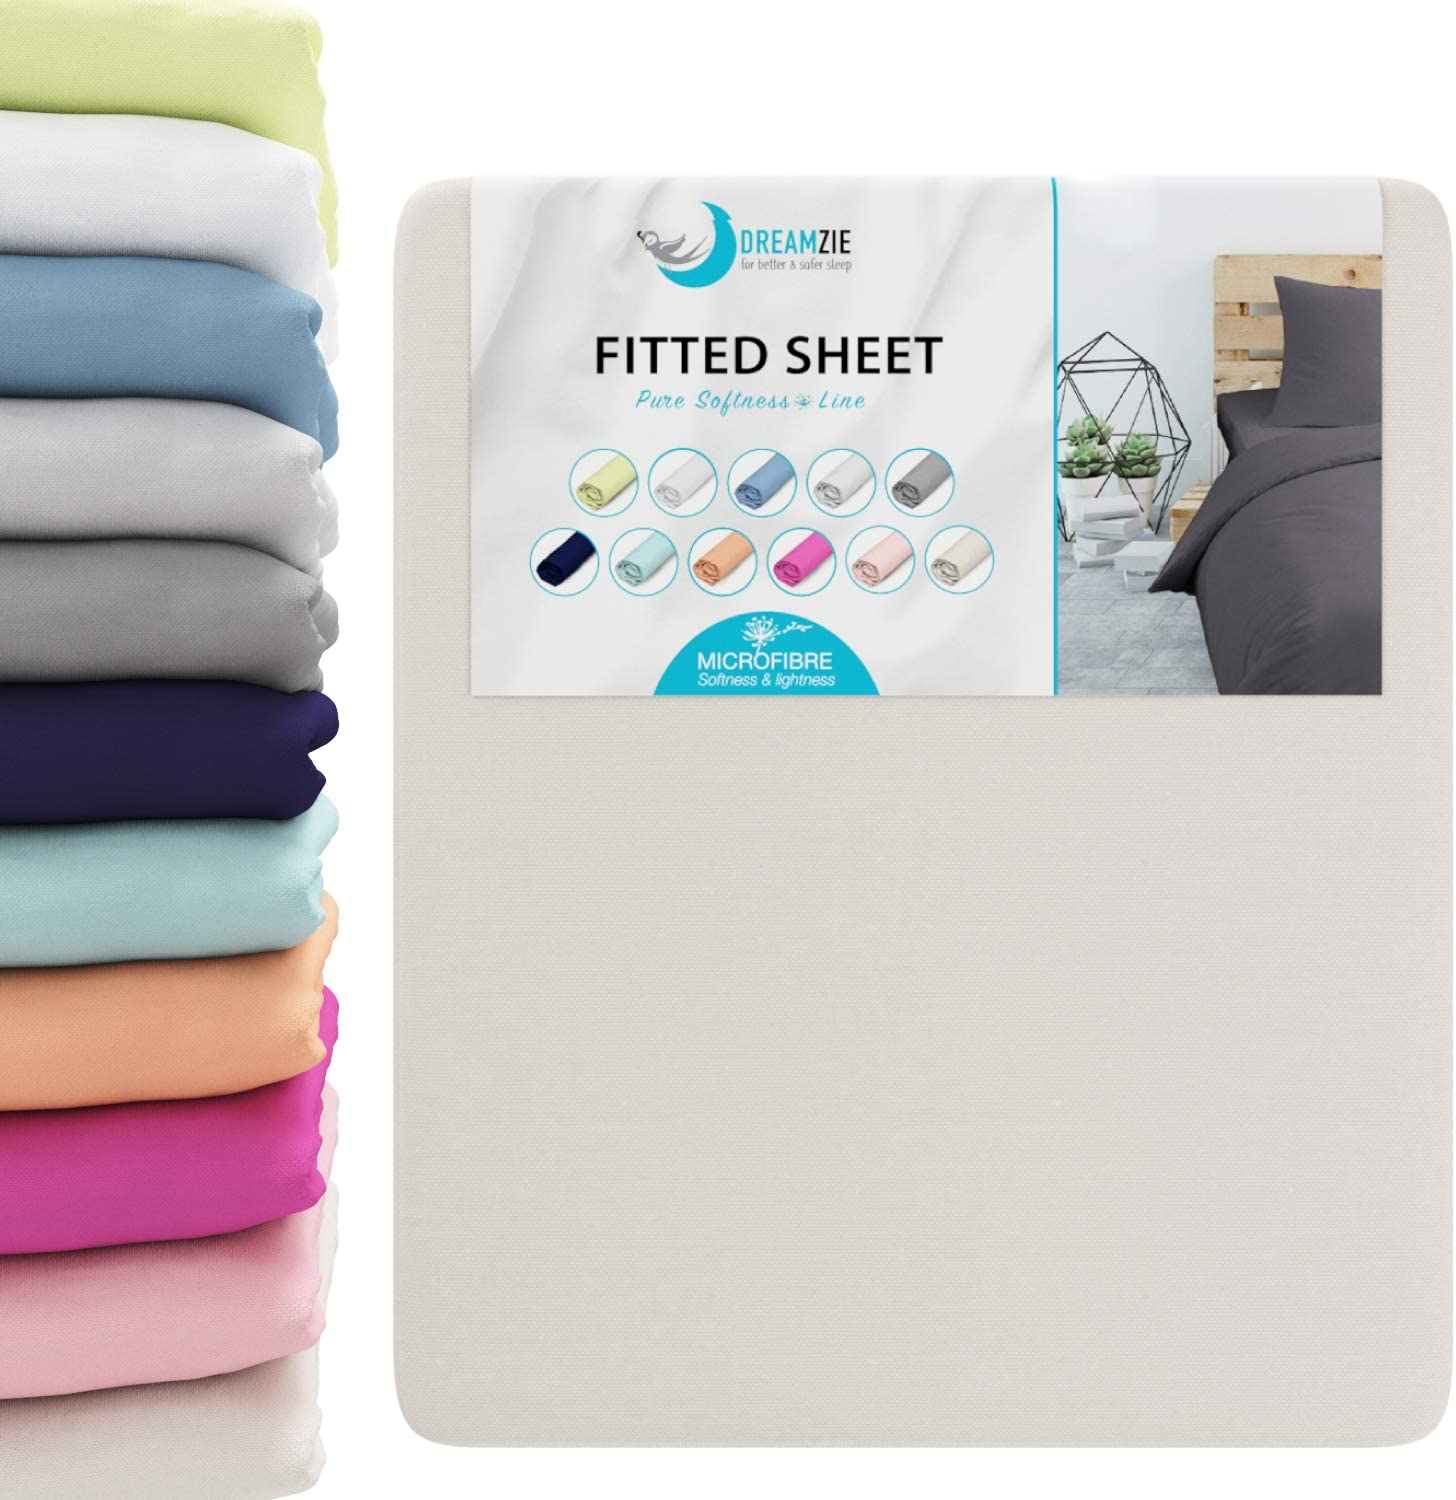 Dreamsoft Microfibre Nicky Soft Fitted Sheet 140-160x200cm Cream